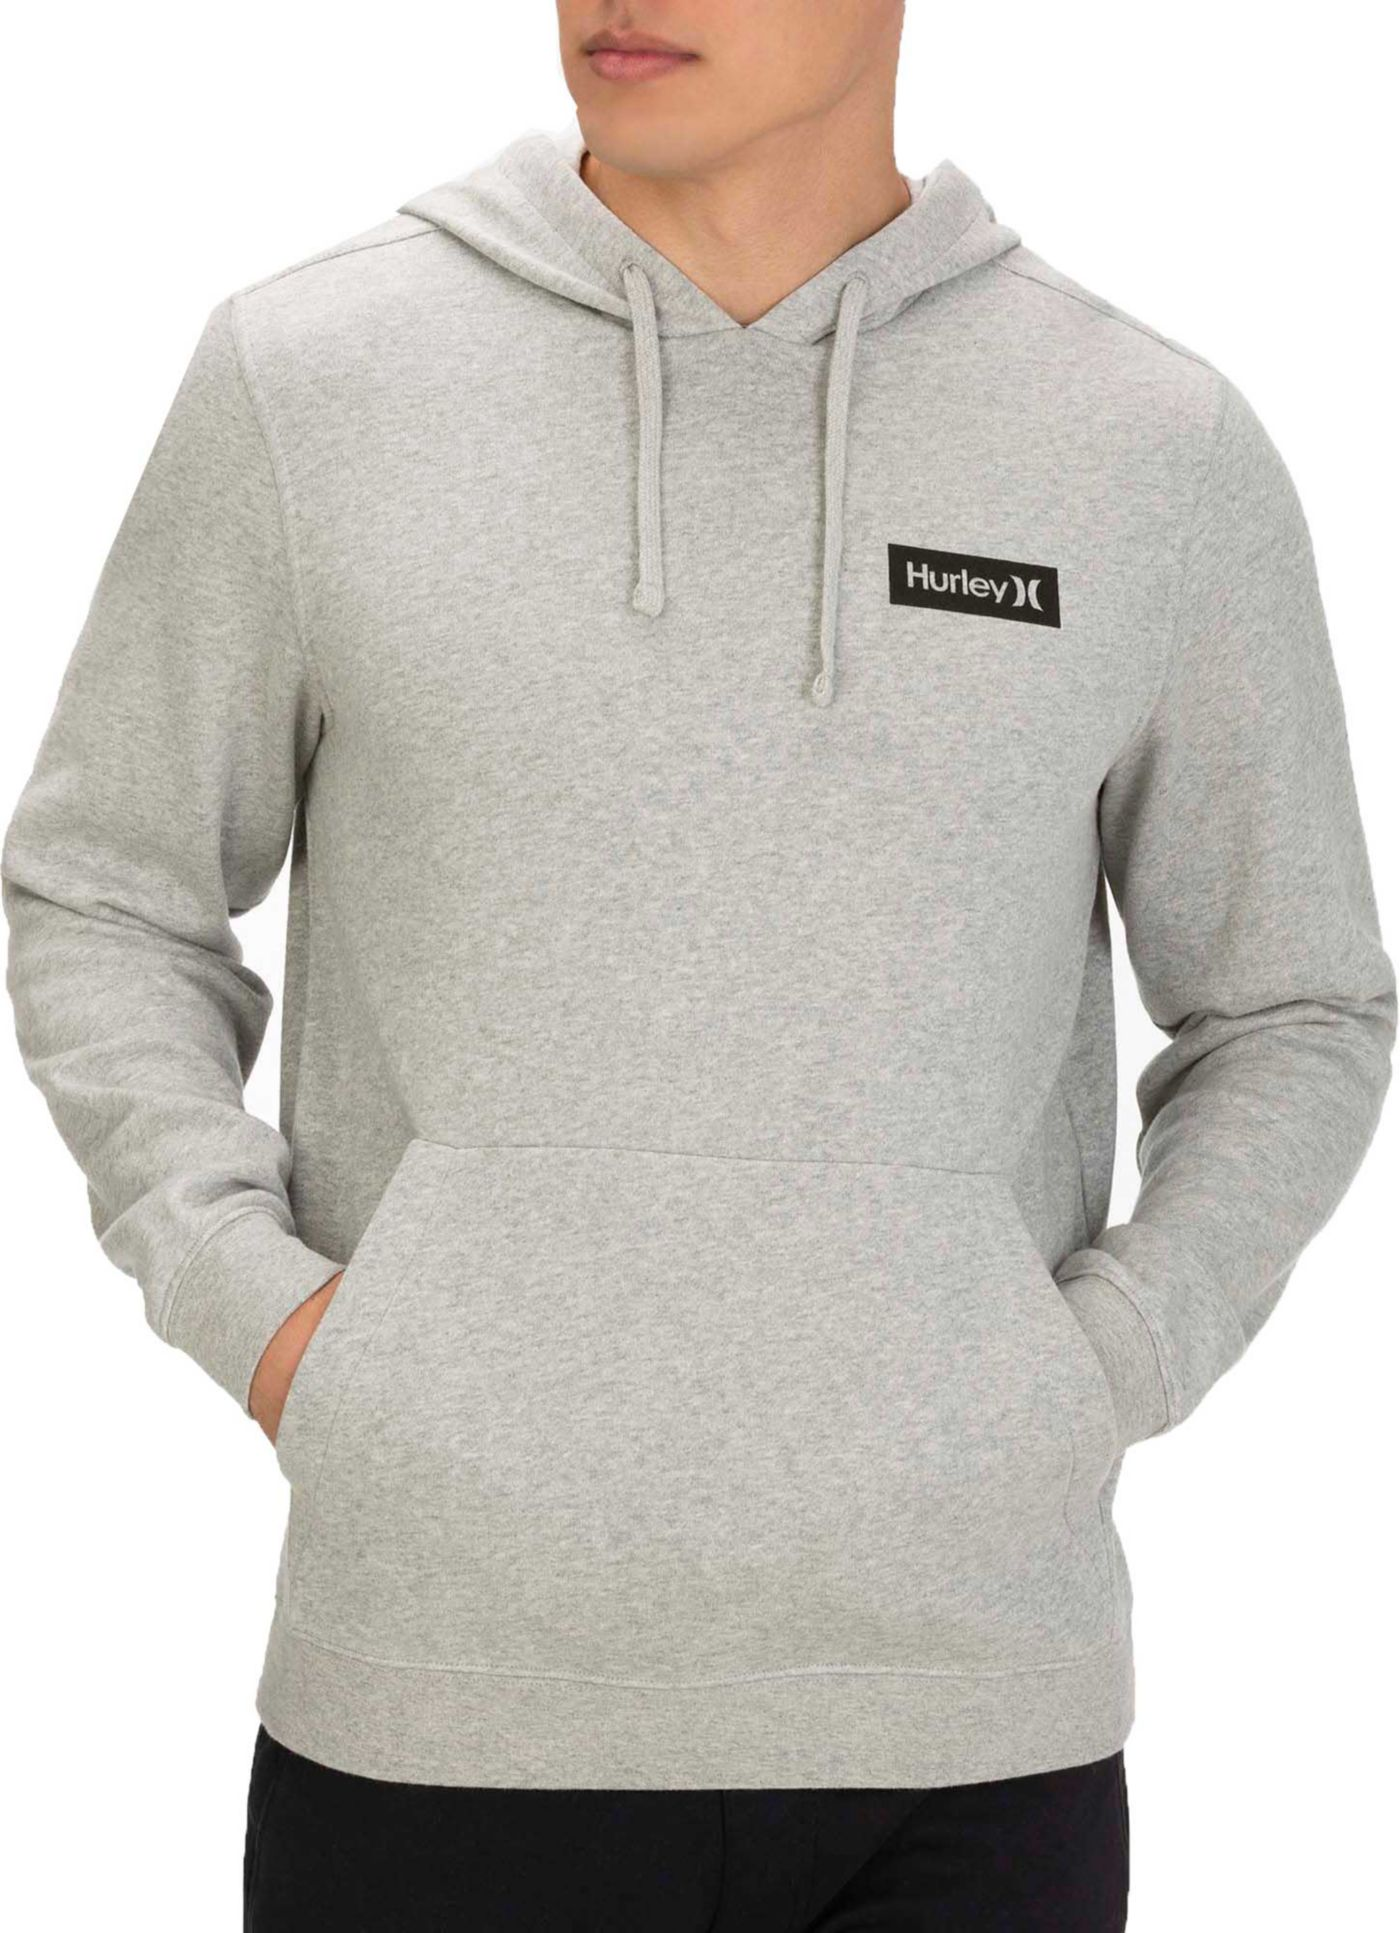 Hurley Men's One & Only Boxed Flashback Pullover Hoodie